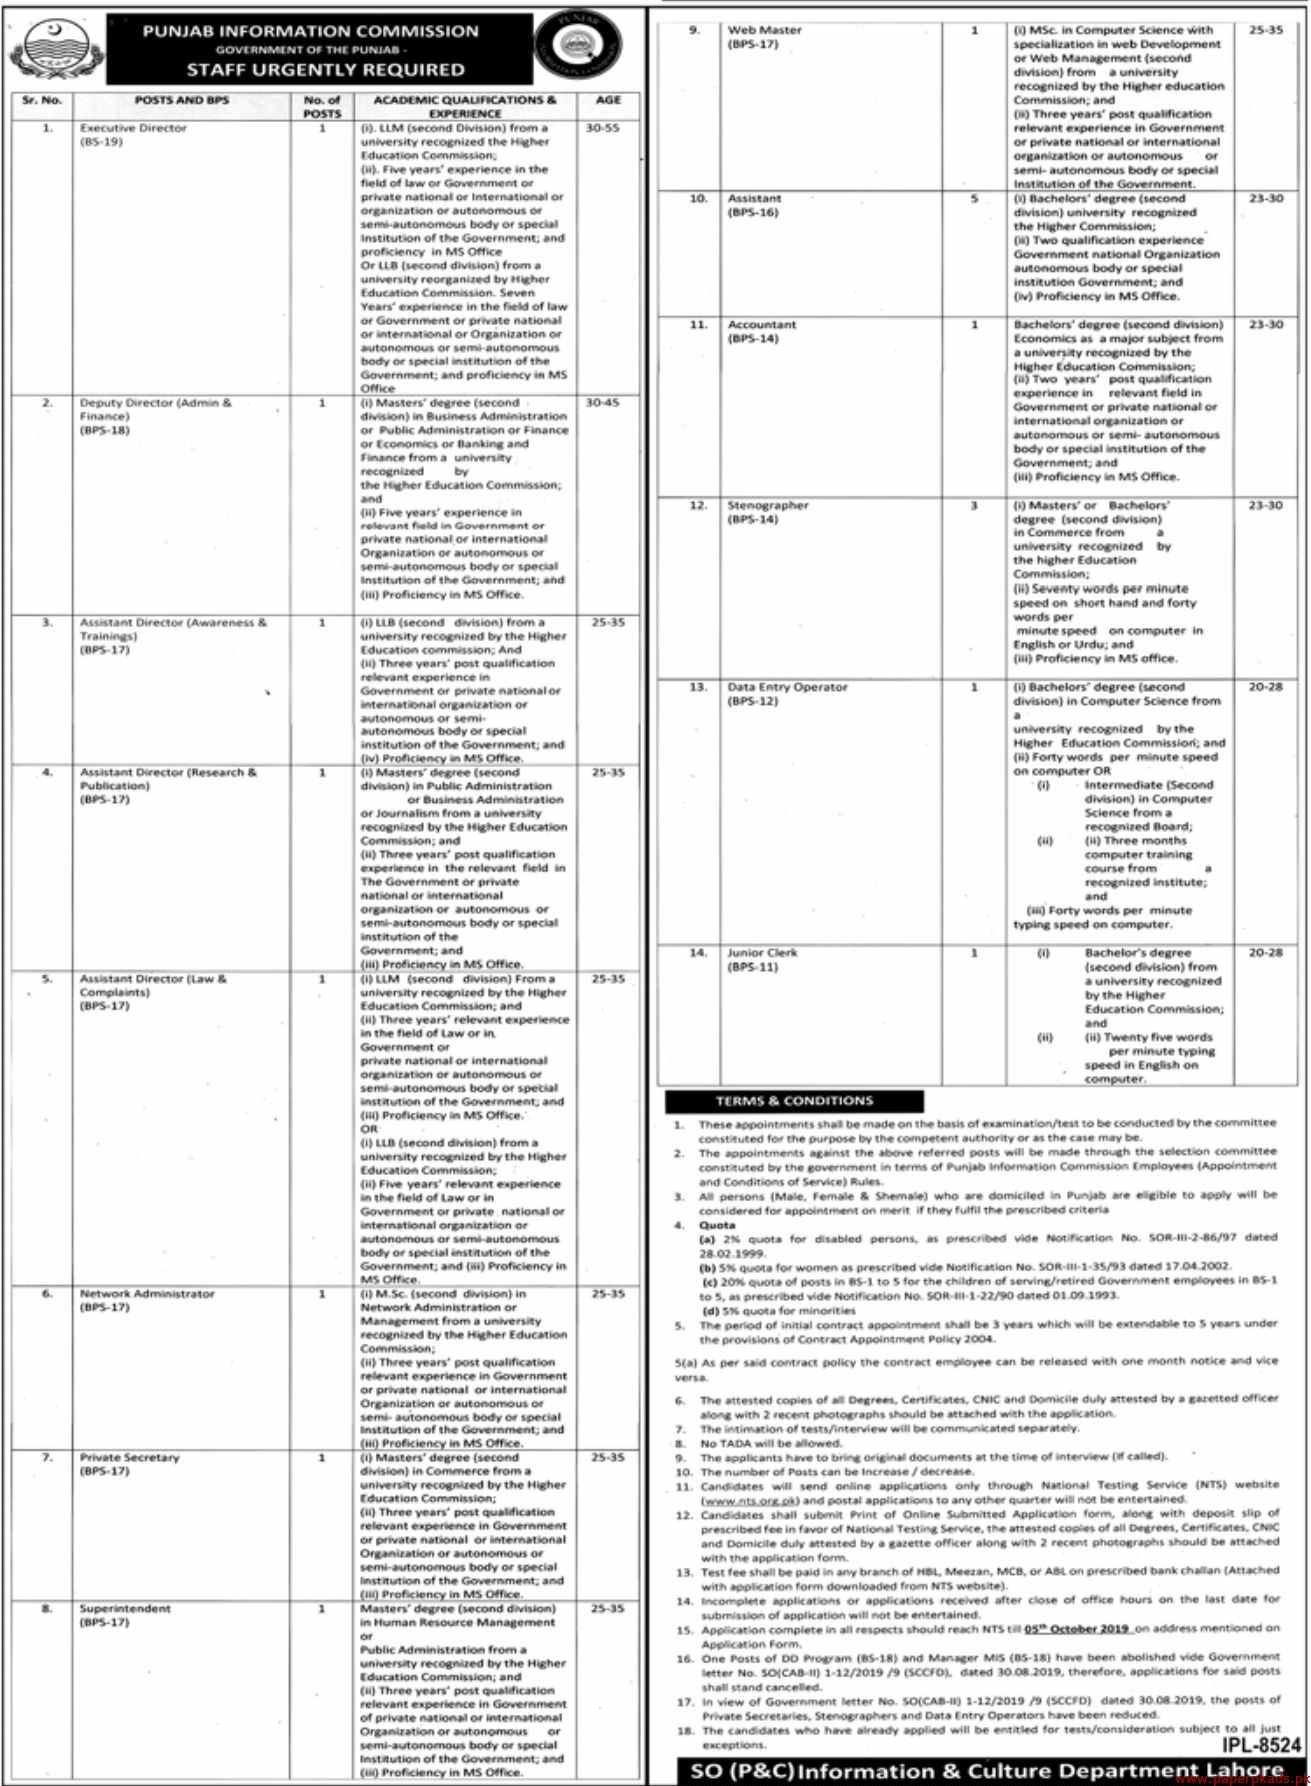 Government of the Punjab - Punjab Information Commission PIC Jobs 2019 Latest